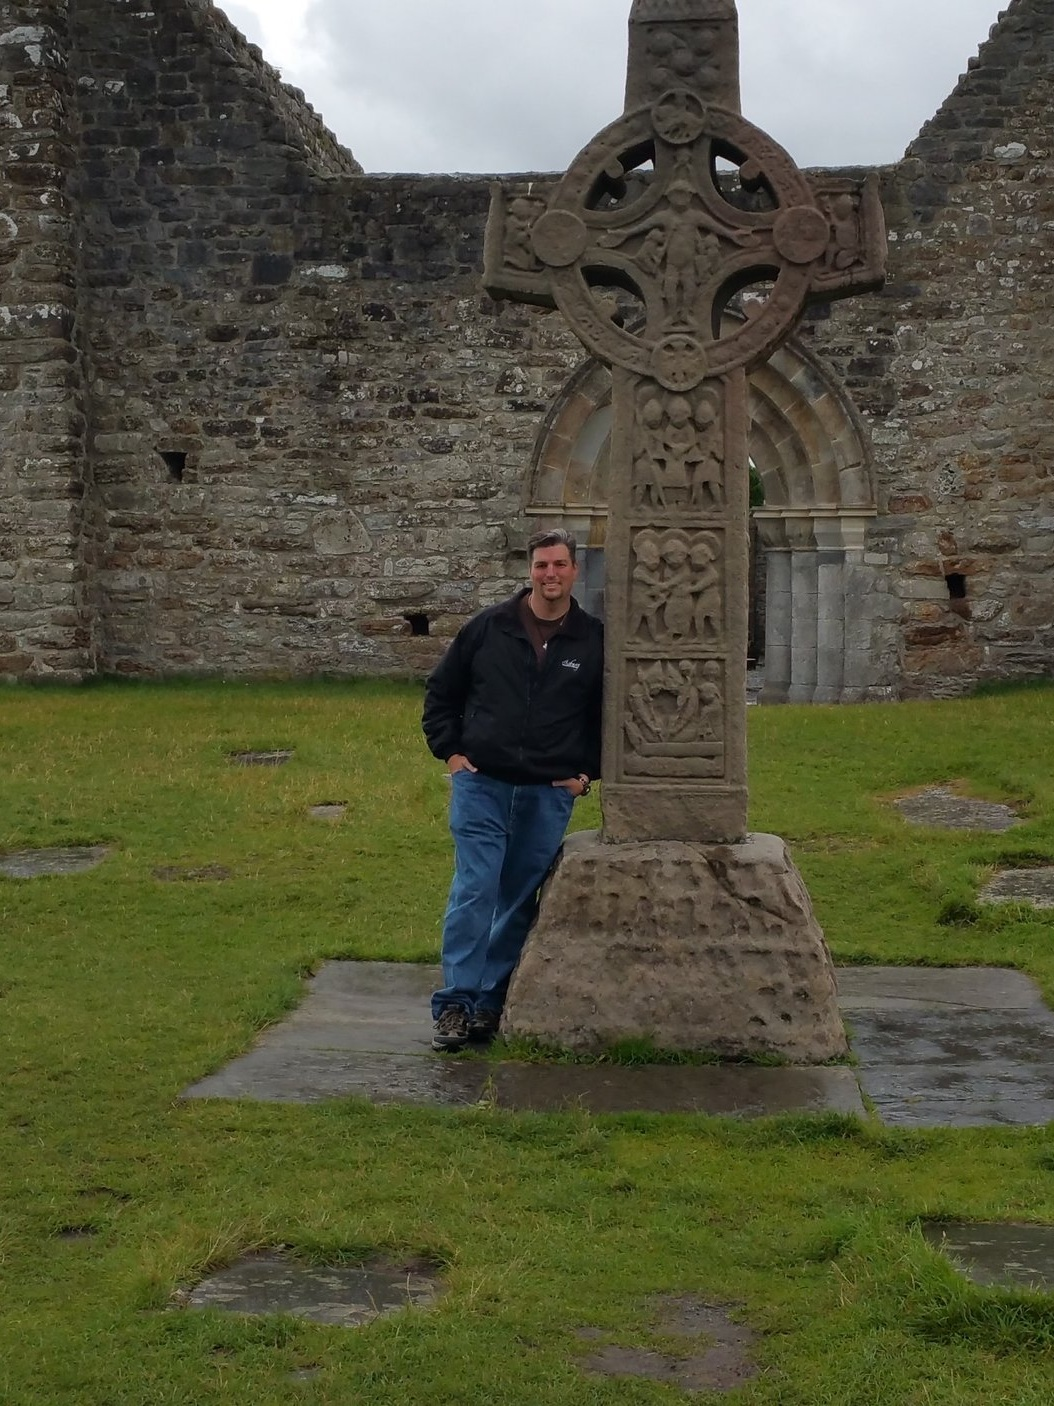 The Cross of the Scriptures at Clonmacnoise (County Offaly, Ireland, 2016)